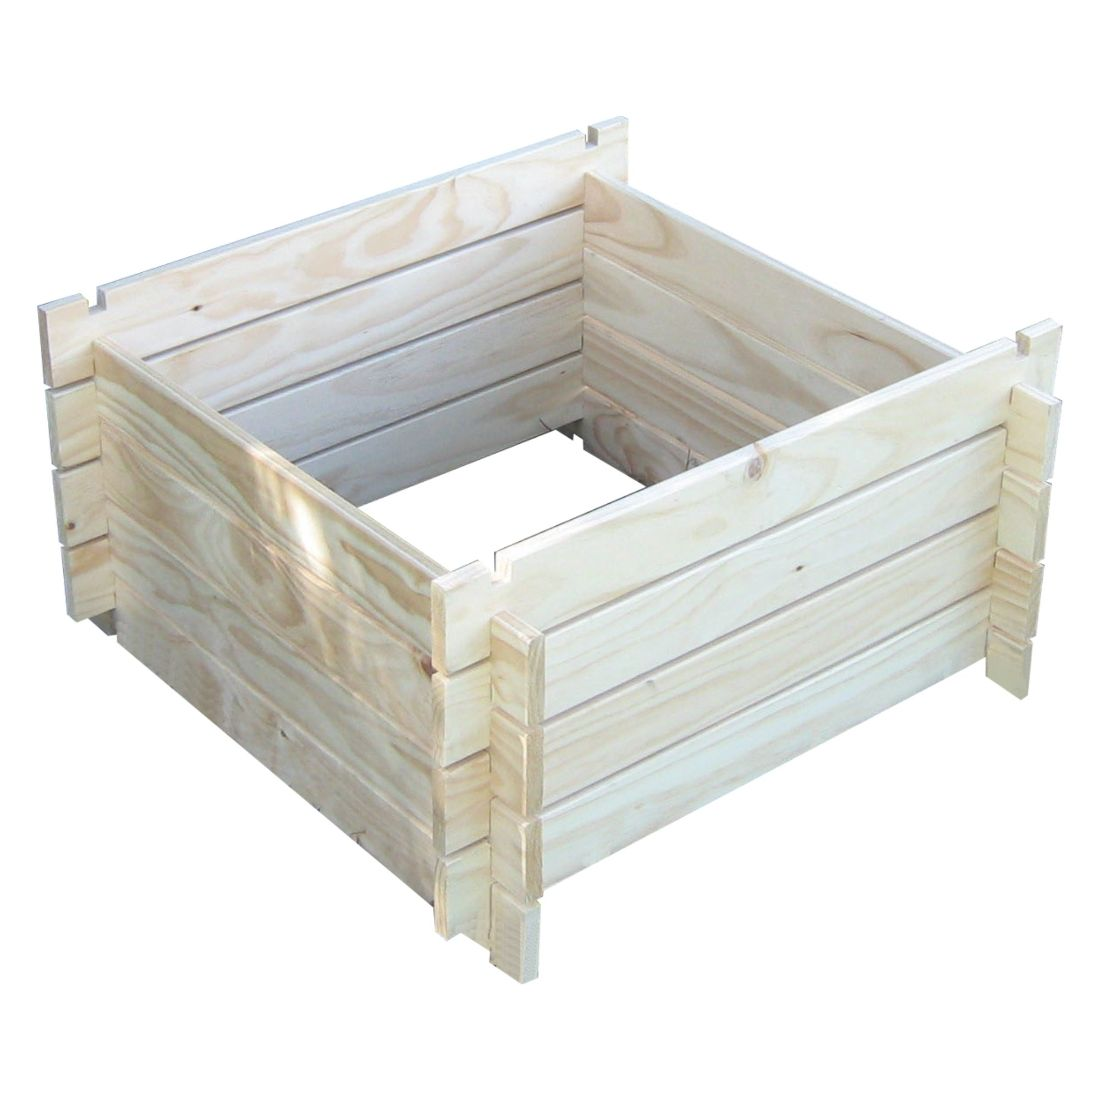 Kitset Wooden Compost Bin 800 x 800mm